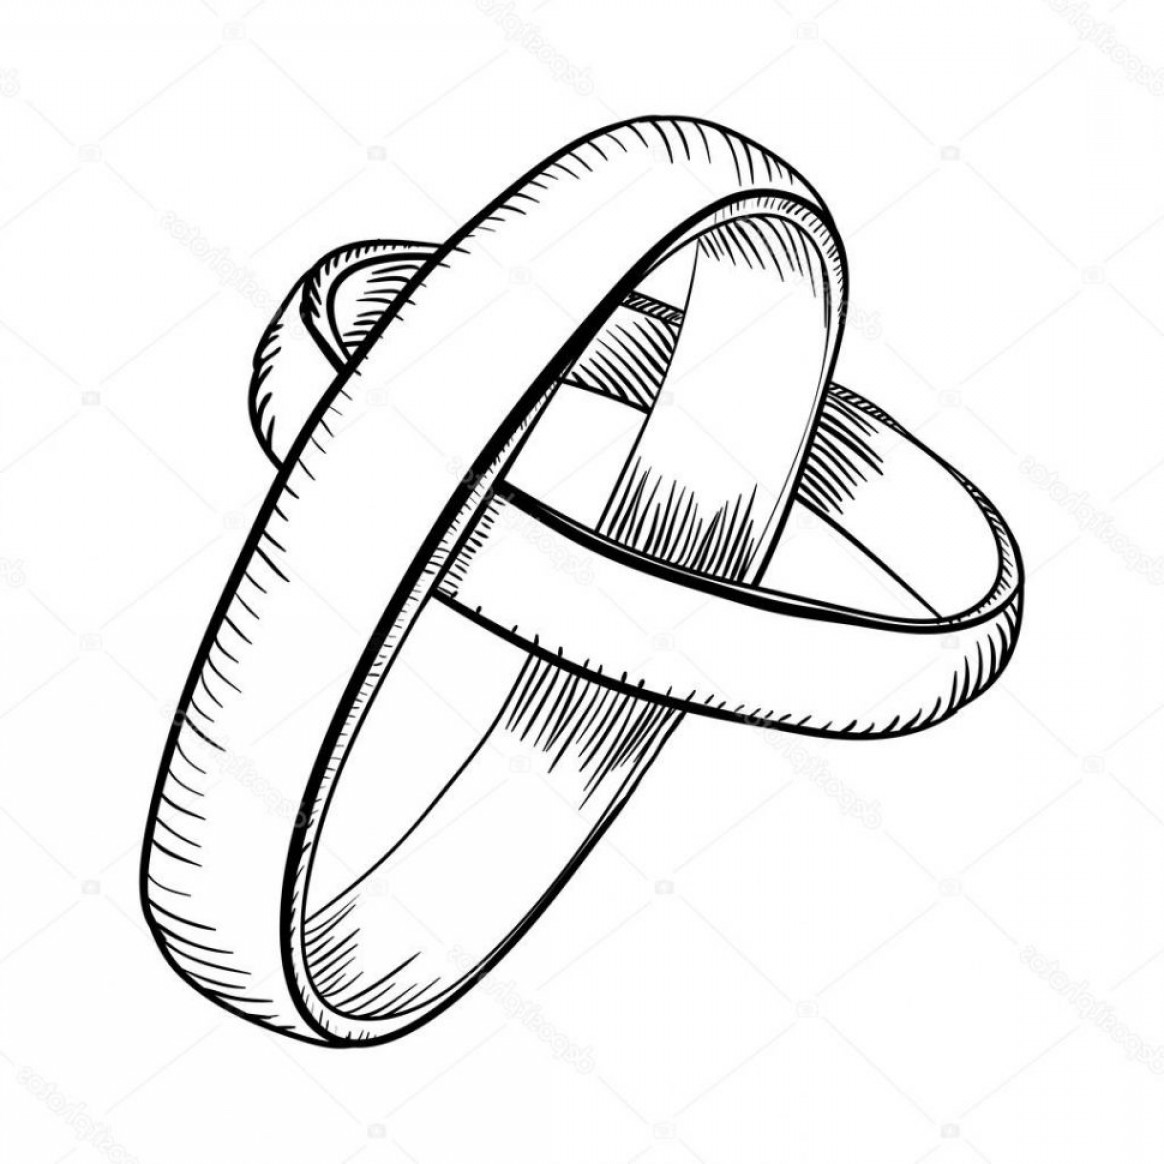 1164x1164 Ring Drawing Easy How To Draw A Ring In A Box Drawing Wedding